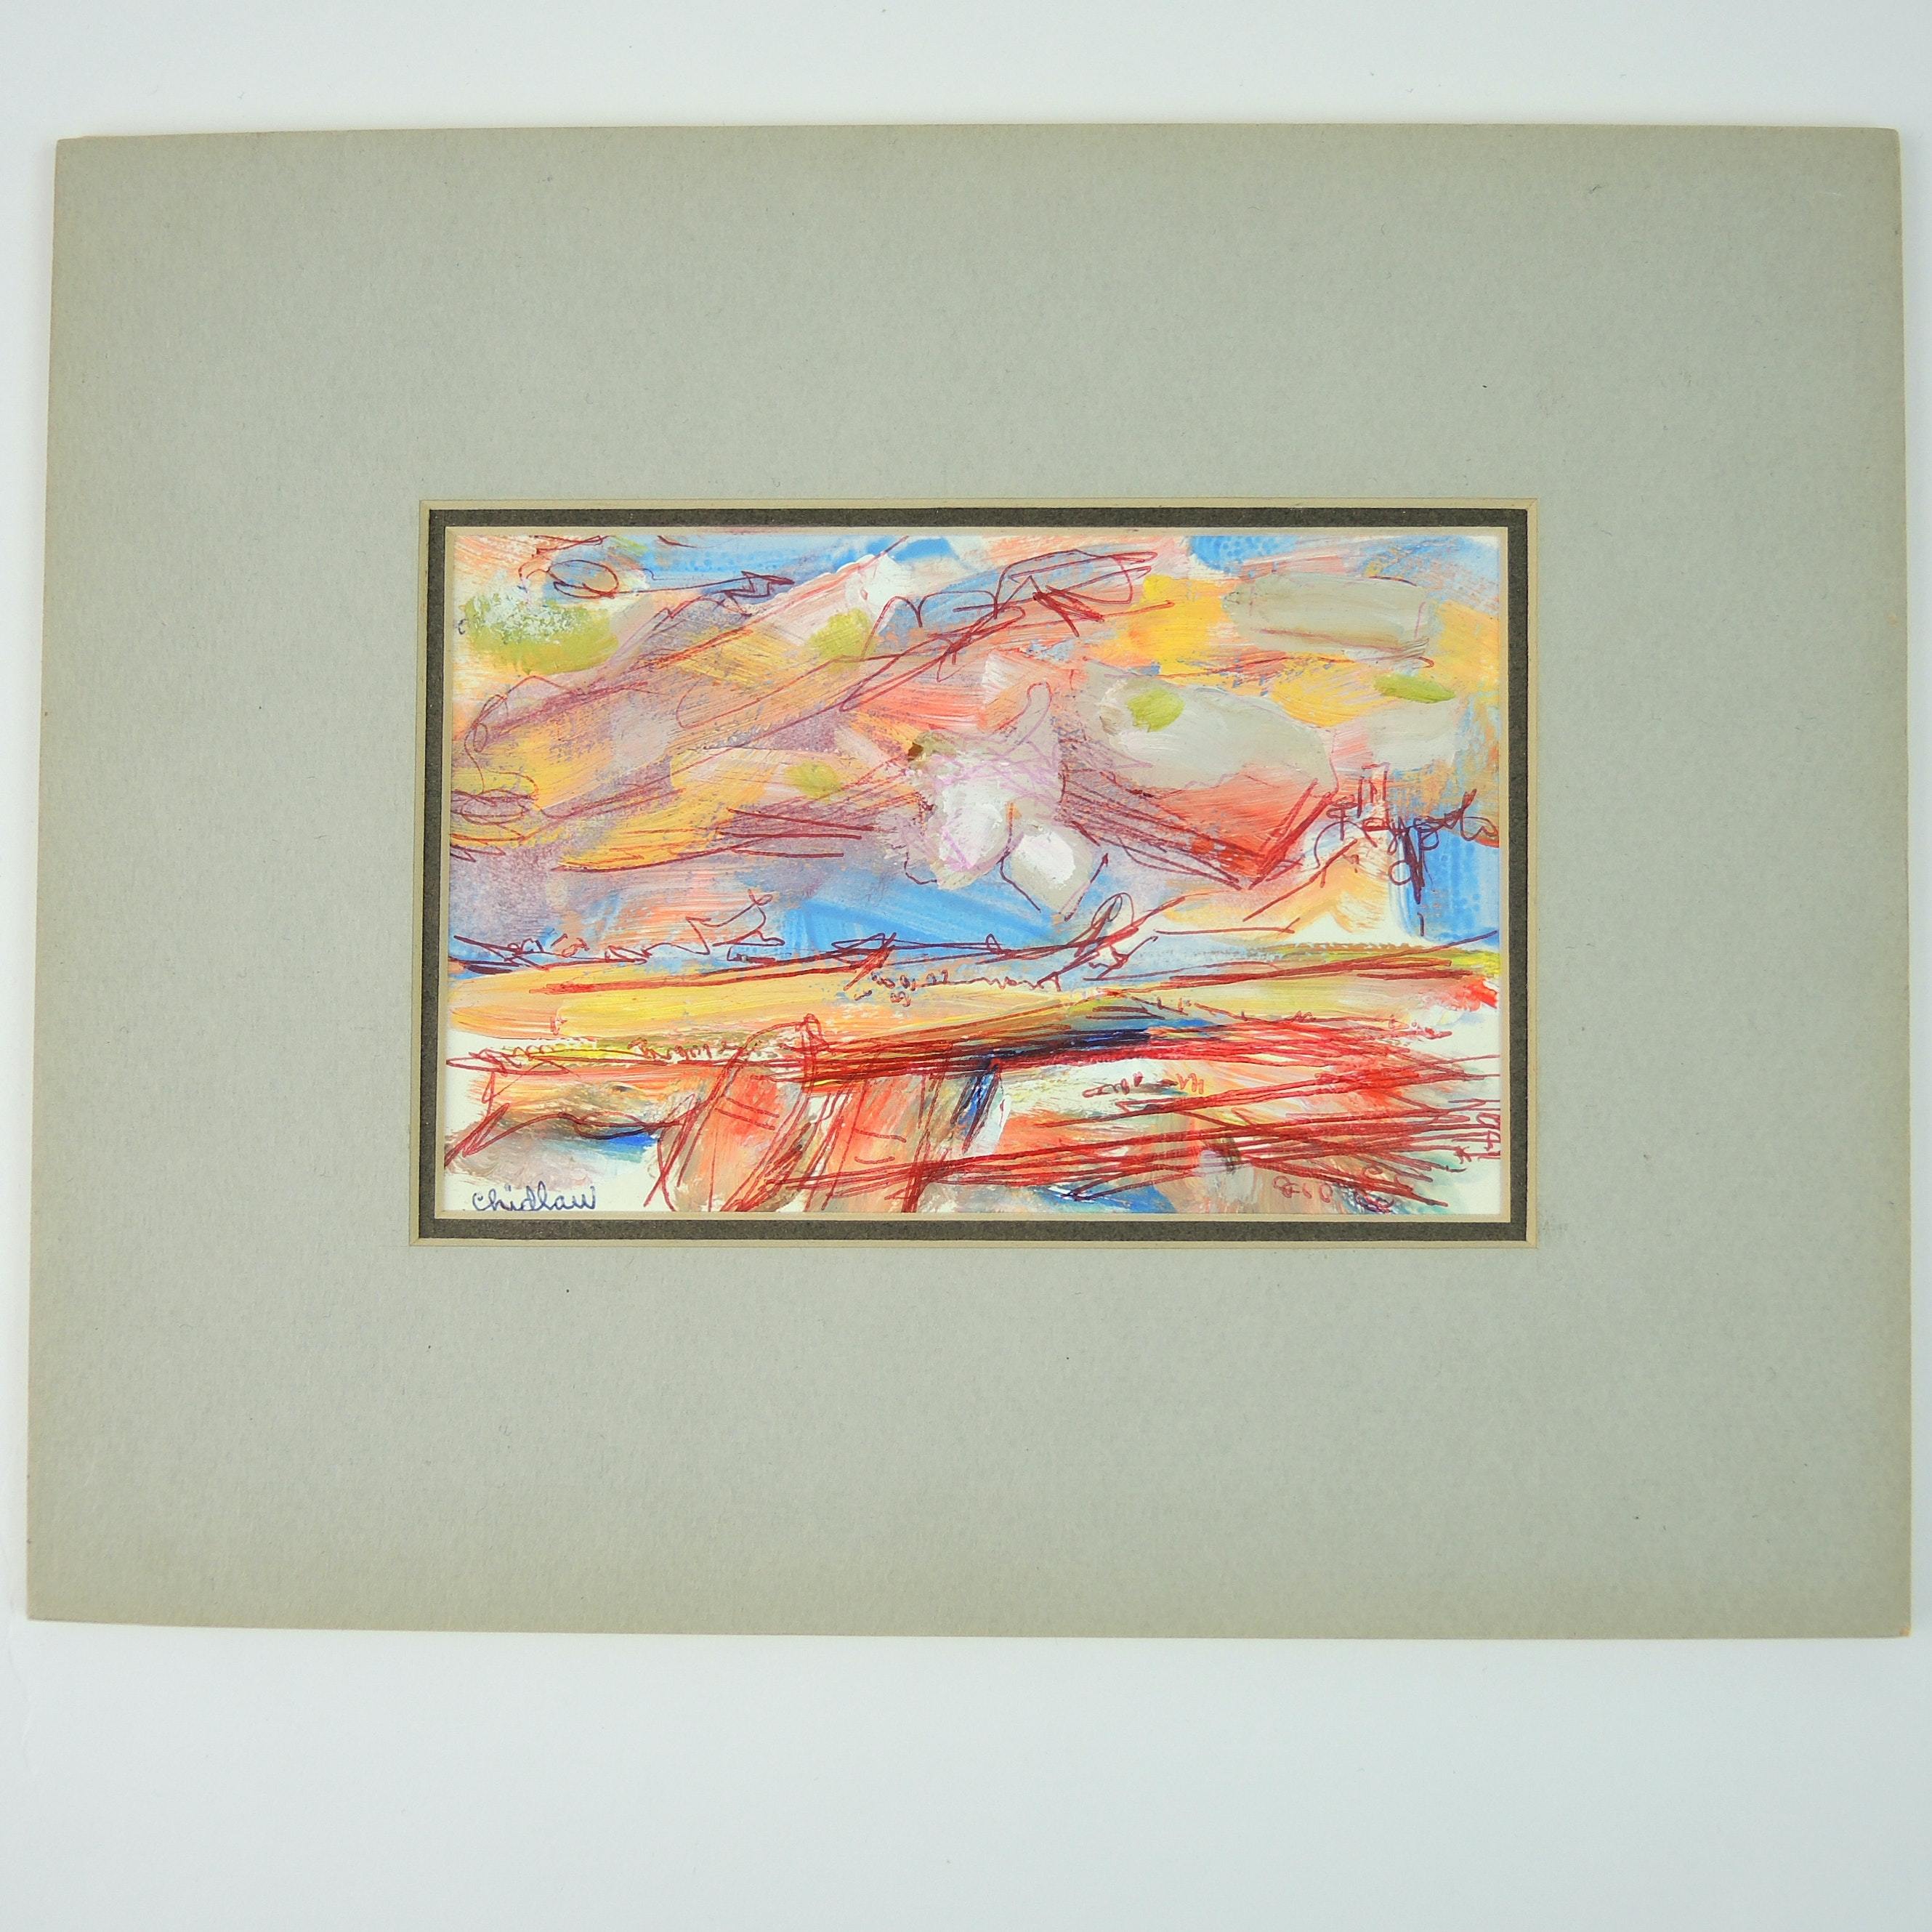 Paul Chidlaw Mixed Media Painting on Paper Abstract Expressionism